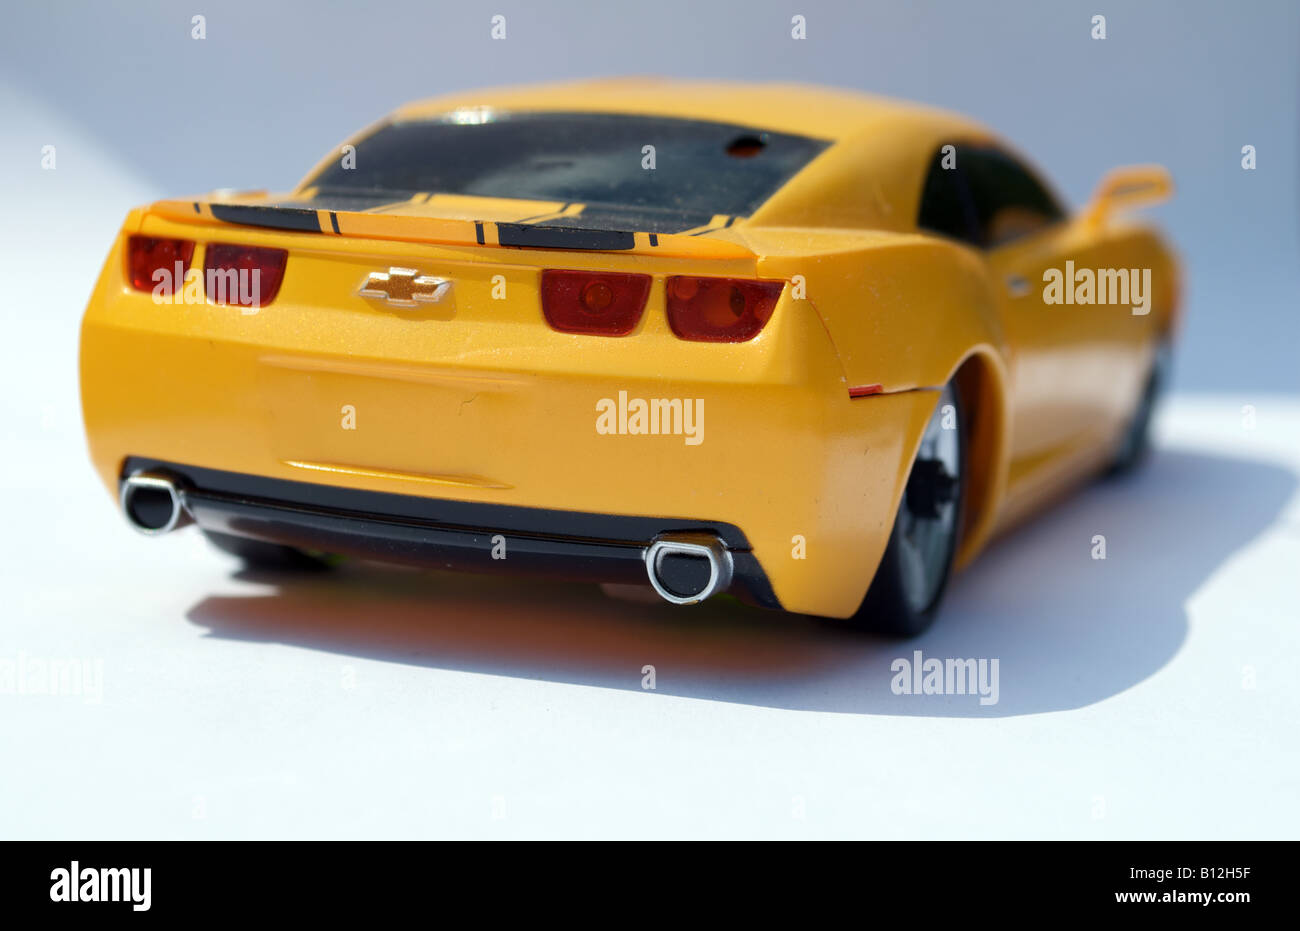 Chevy Camaro Toy Plastic Car Made To Show The Way New American